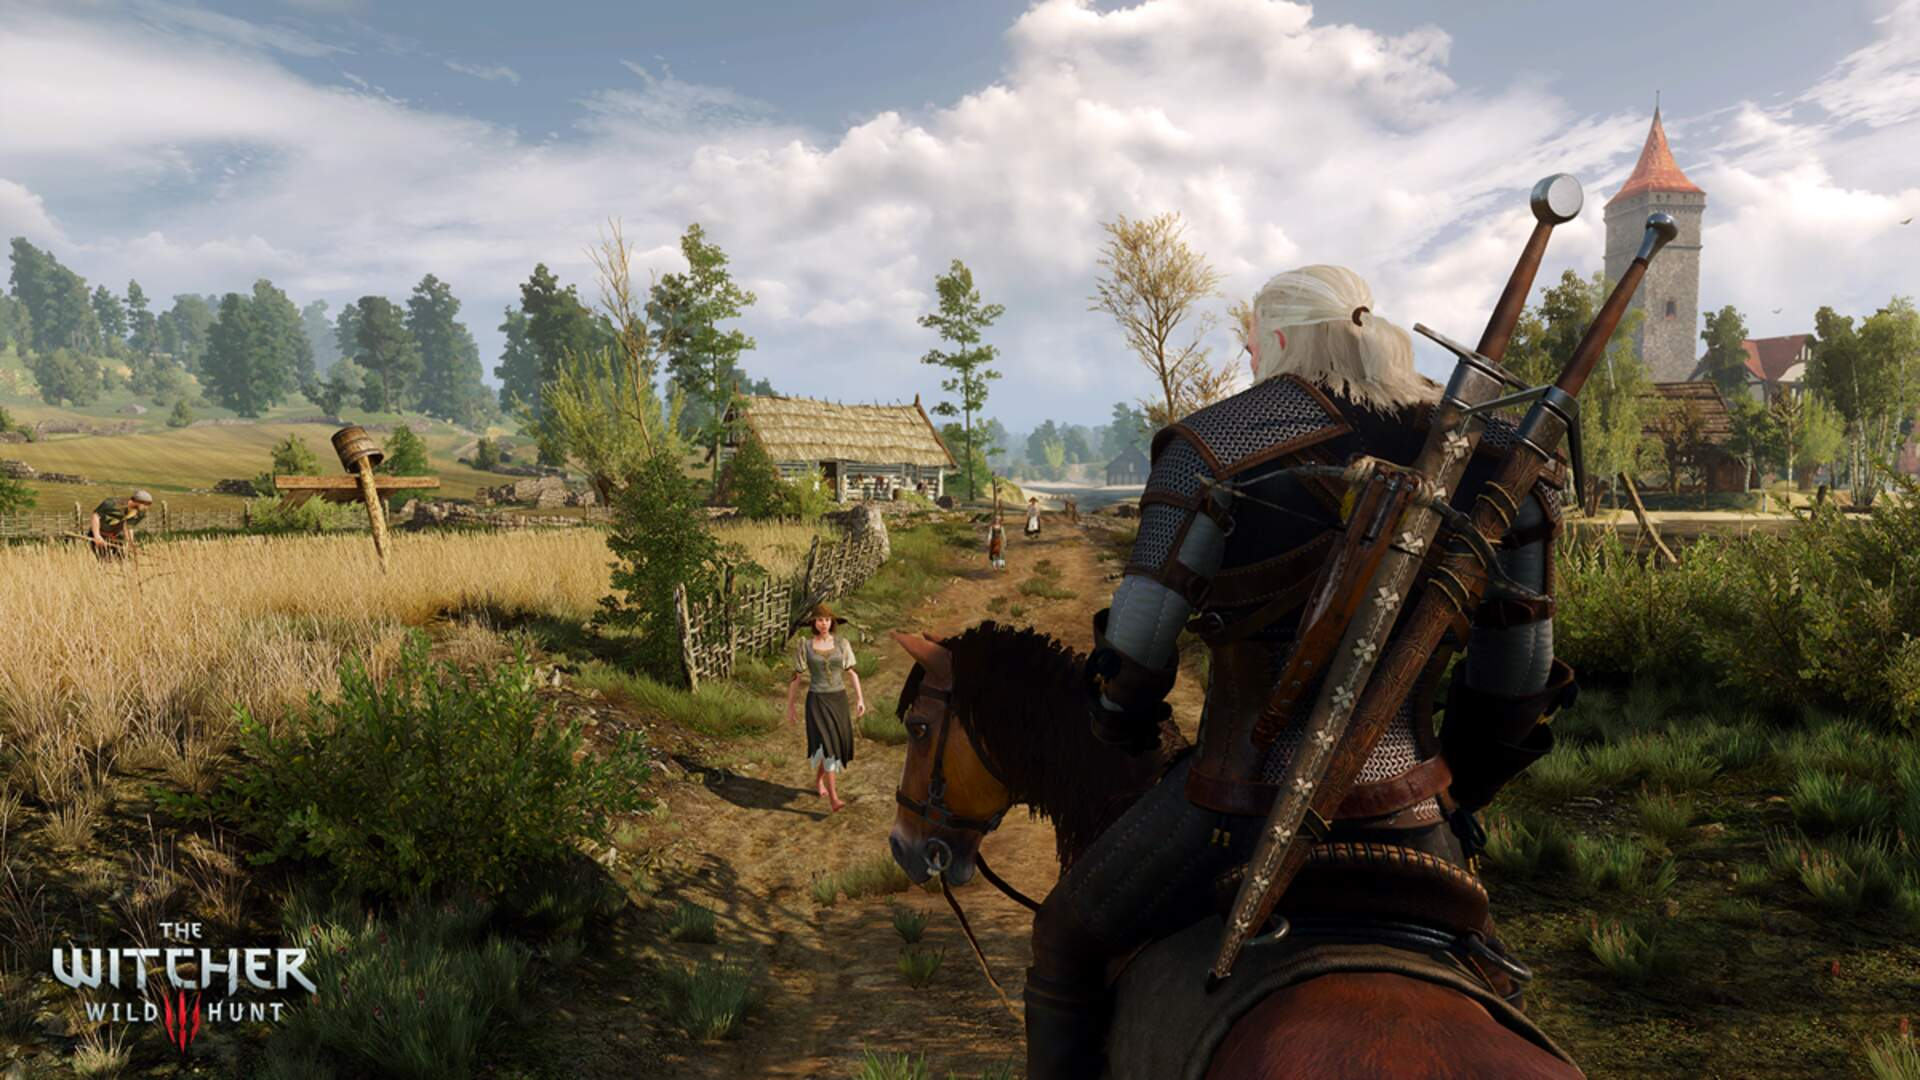 Witcher III Wild Hunt Preview: Massive Scope and Scale